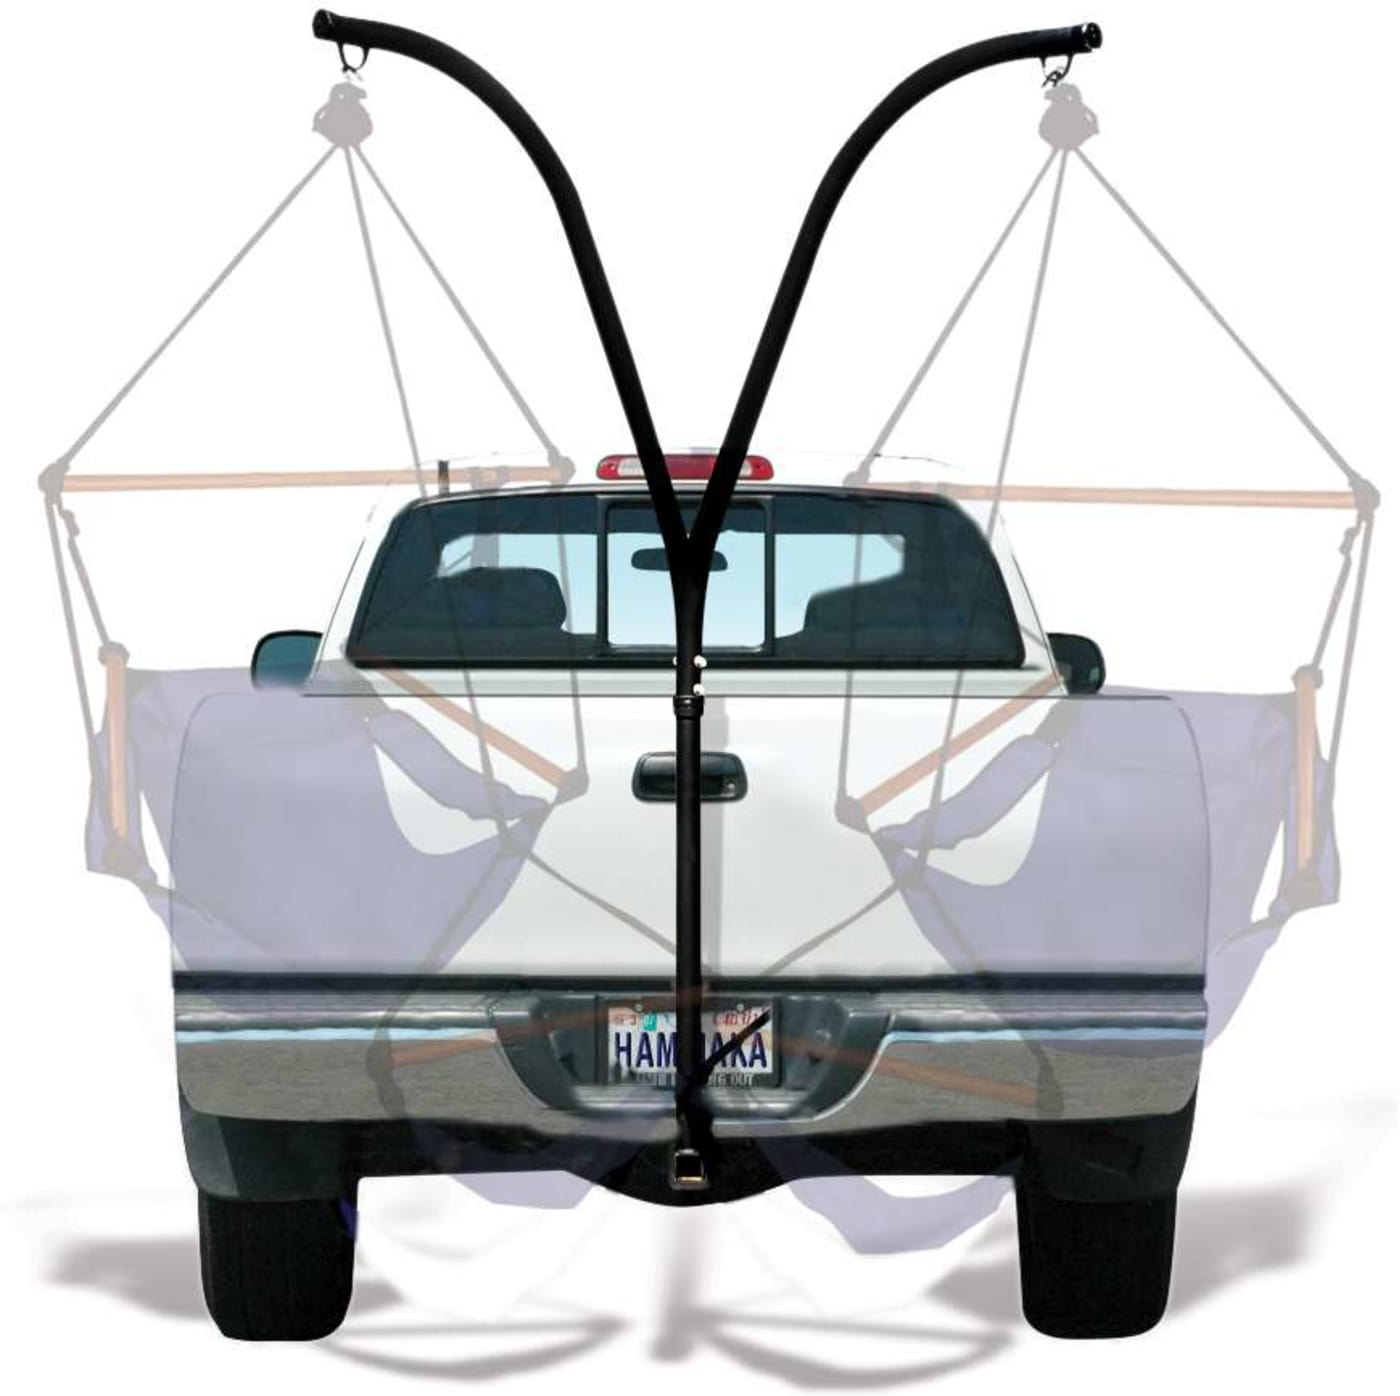 Furniture Colors May Vary Based On Computer Monitor And Room Lighting.  Hammaka Trailer Hitch Stand For Hanging Chairs